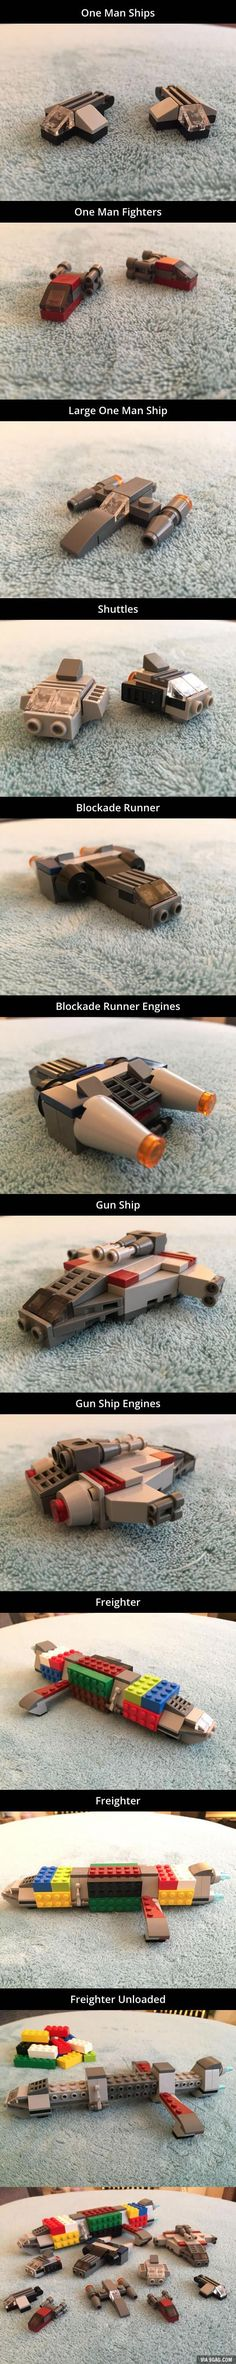 of the best custom LEGO Star Wars creations featured on The Brothers Brick Lego Spaceship, Lego Robot, Lego Mecha, Lego Star Wars, Nave Lego, Deco Lego, Lego Machines, Amazing Lego Creations, Lego Ship